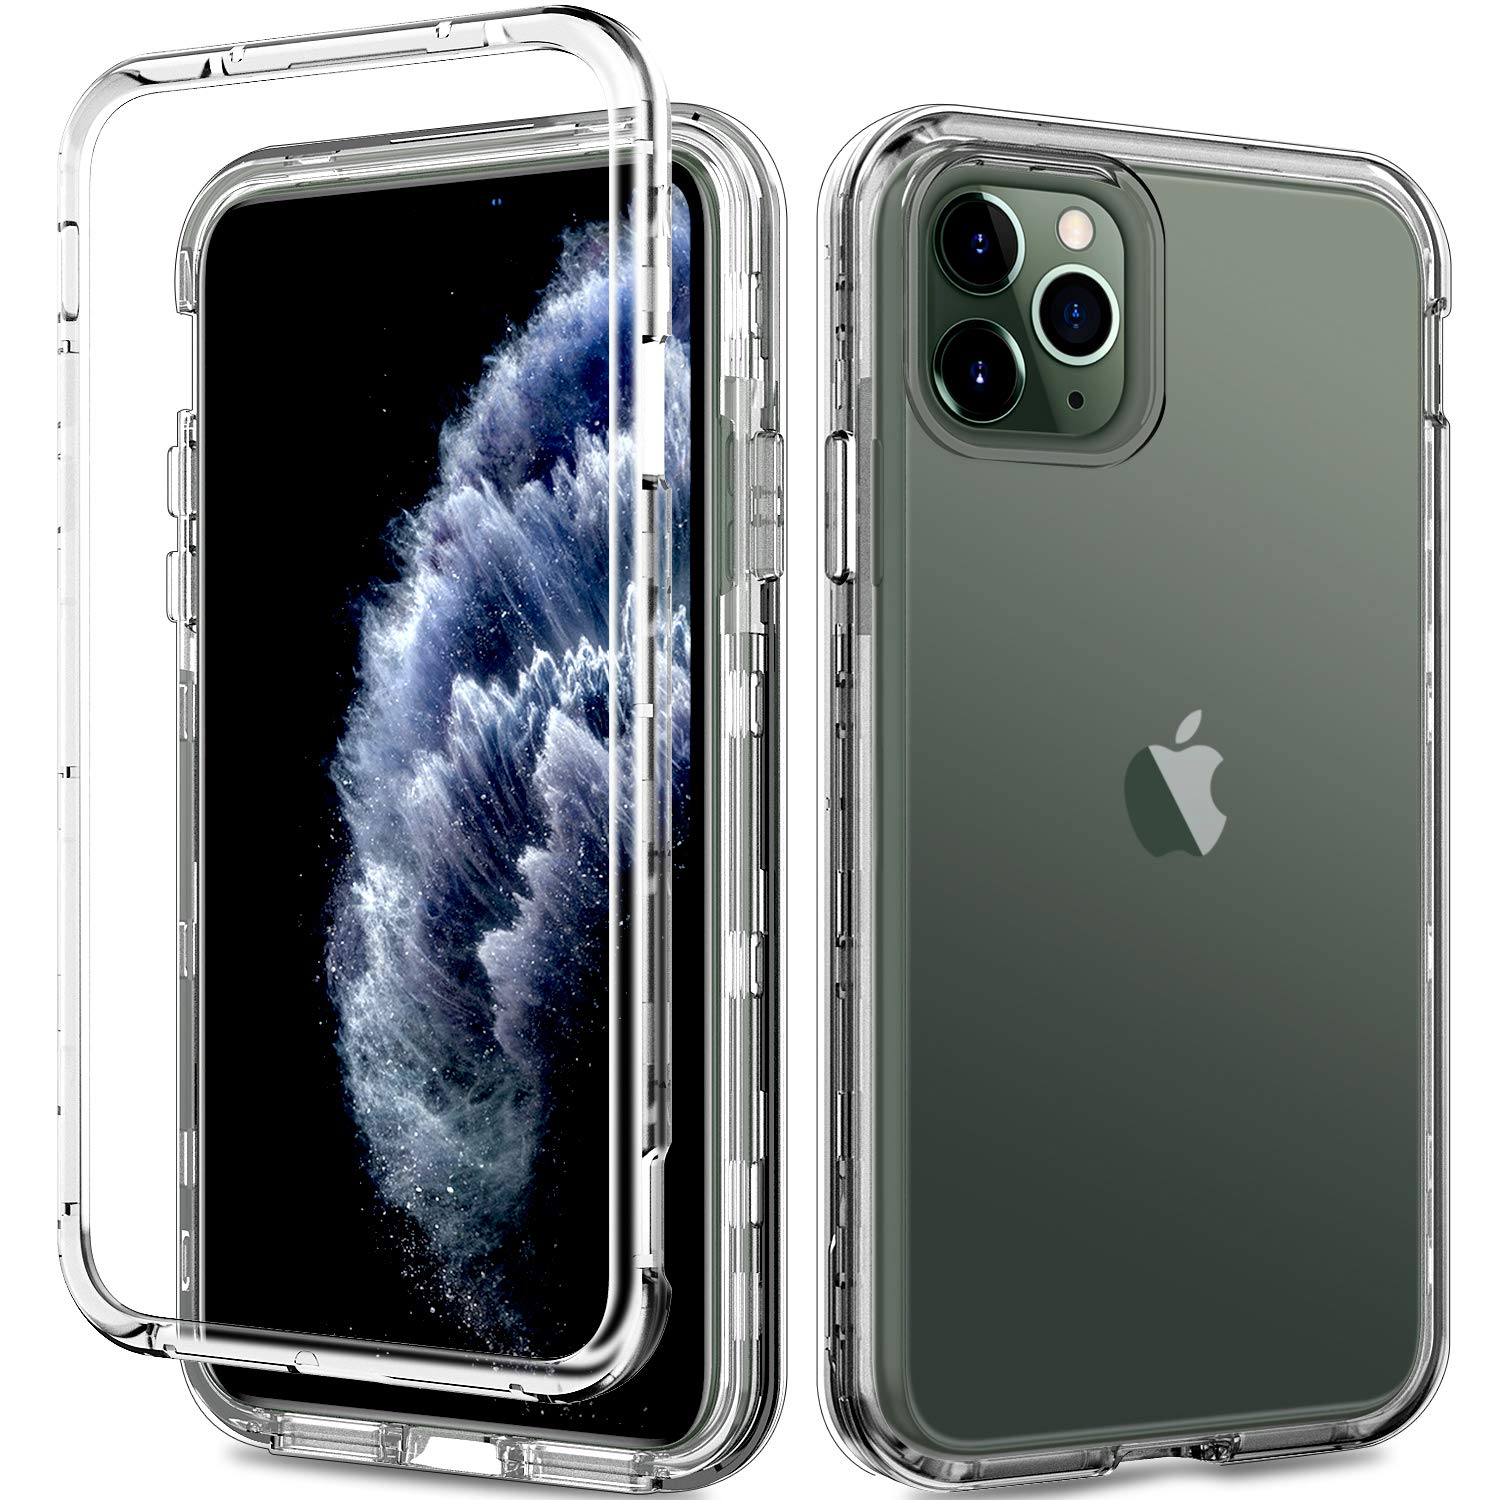 ACKETBOX iPhone 11 Pro Max Case,Heavy Duty Hybrid Impact Defender Hard Clear PC Back Case and Bumper+Transparent TPU Cover Full Body Protective Cover for iPhone 11 Pro Max 6.5 Inch Release 2019